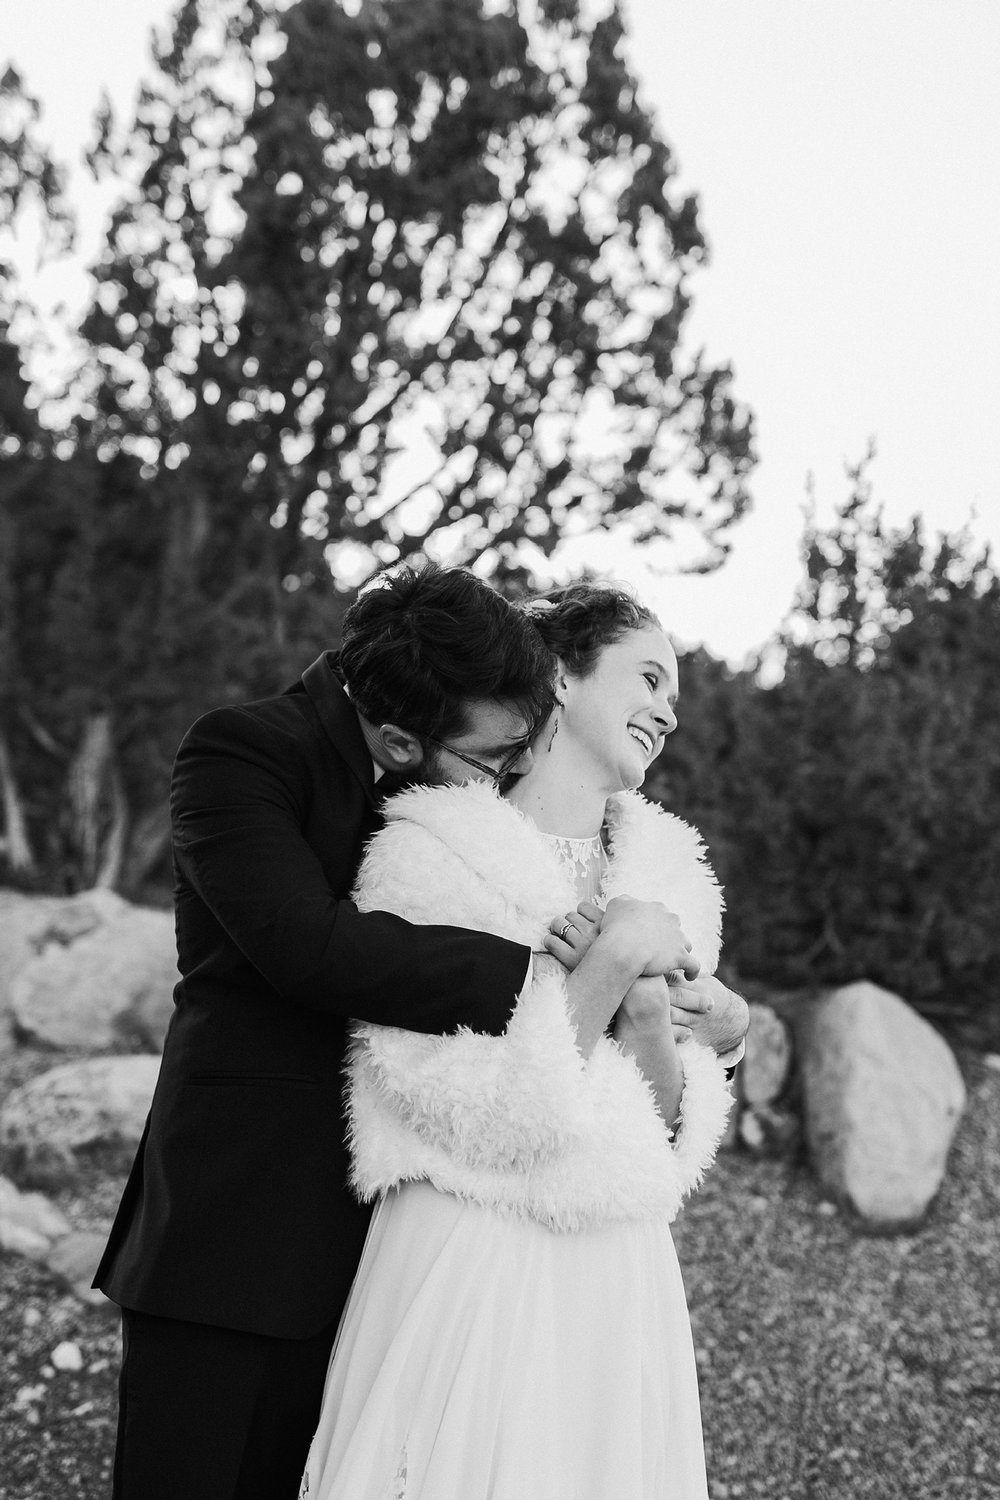 Alicia+lucia+photography+-+albuquerque+wedding+photographer+-+santa+fe+wedding+photography+-+new+mexico+wedding+photographer+-+new+mexico+wedding+-+engagement+-+santa+fe+wedding+-+hacienda+dona+andrea+-+hacienda+dona+andrea+wedding_0077.jpg